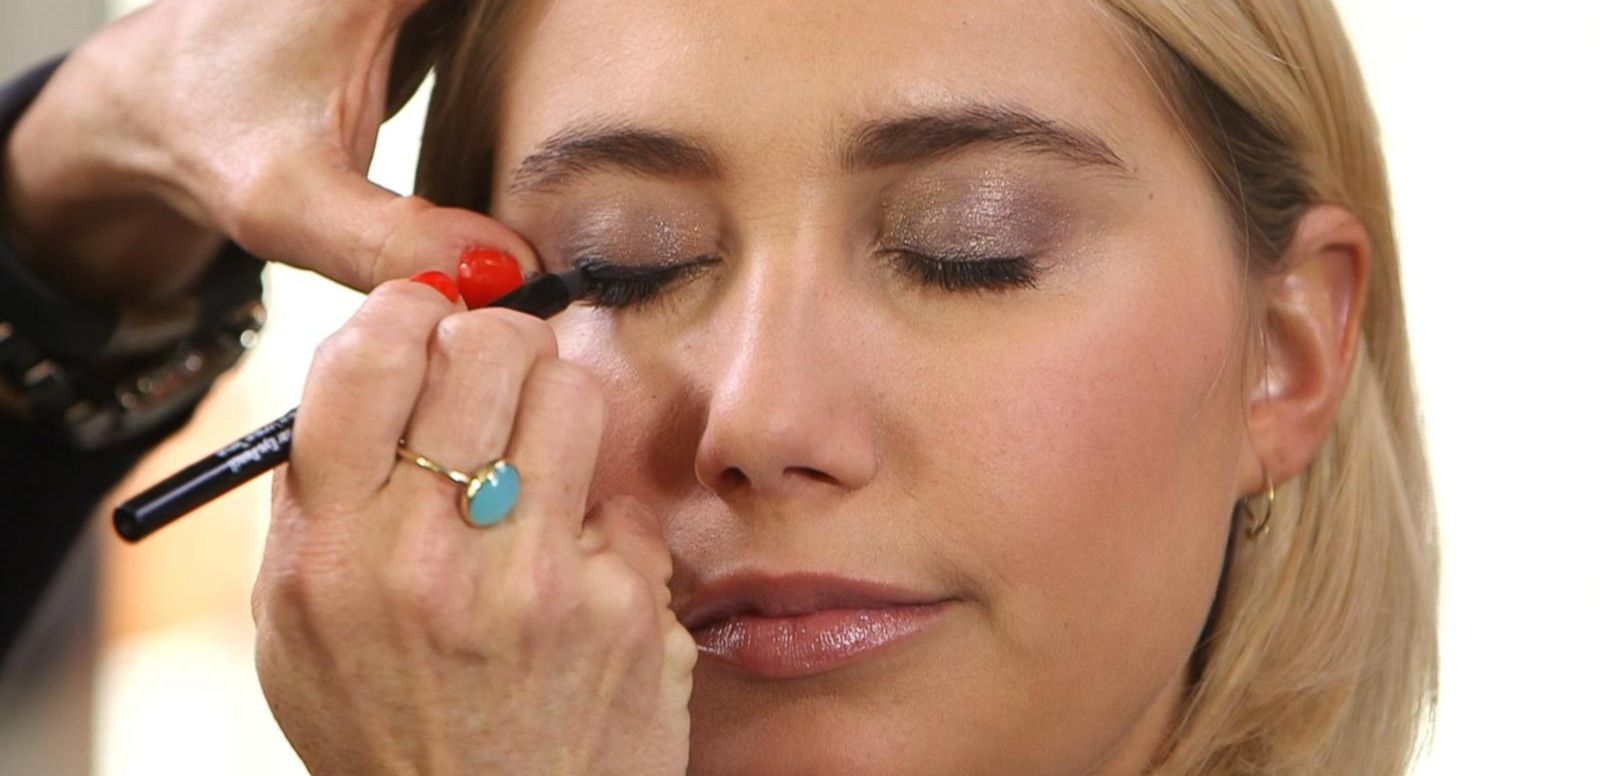 VIDEO: Basic Beauty Tips: How to Create the Perfect Smoky Eye